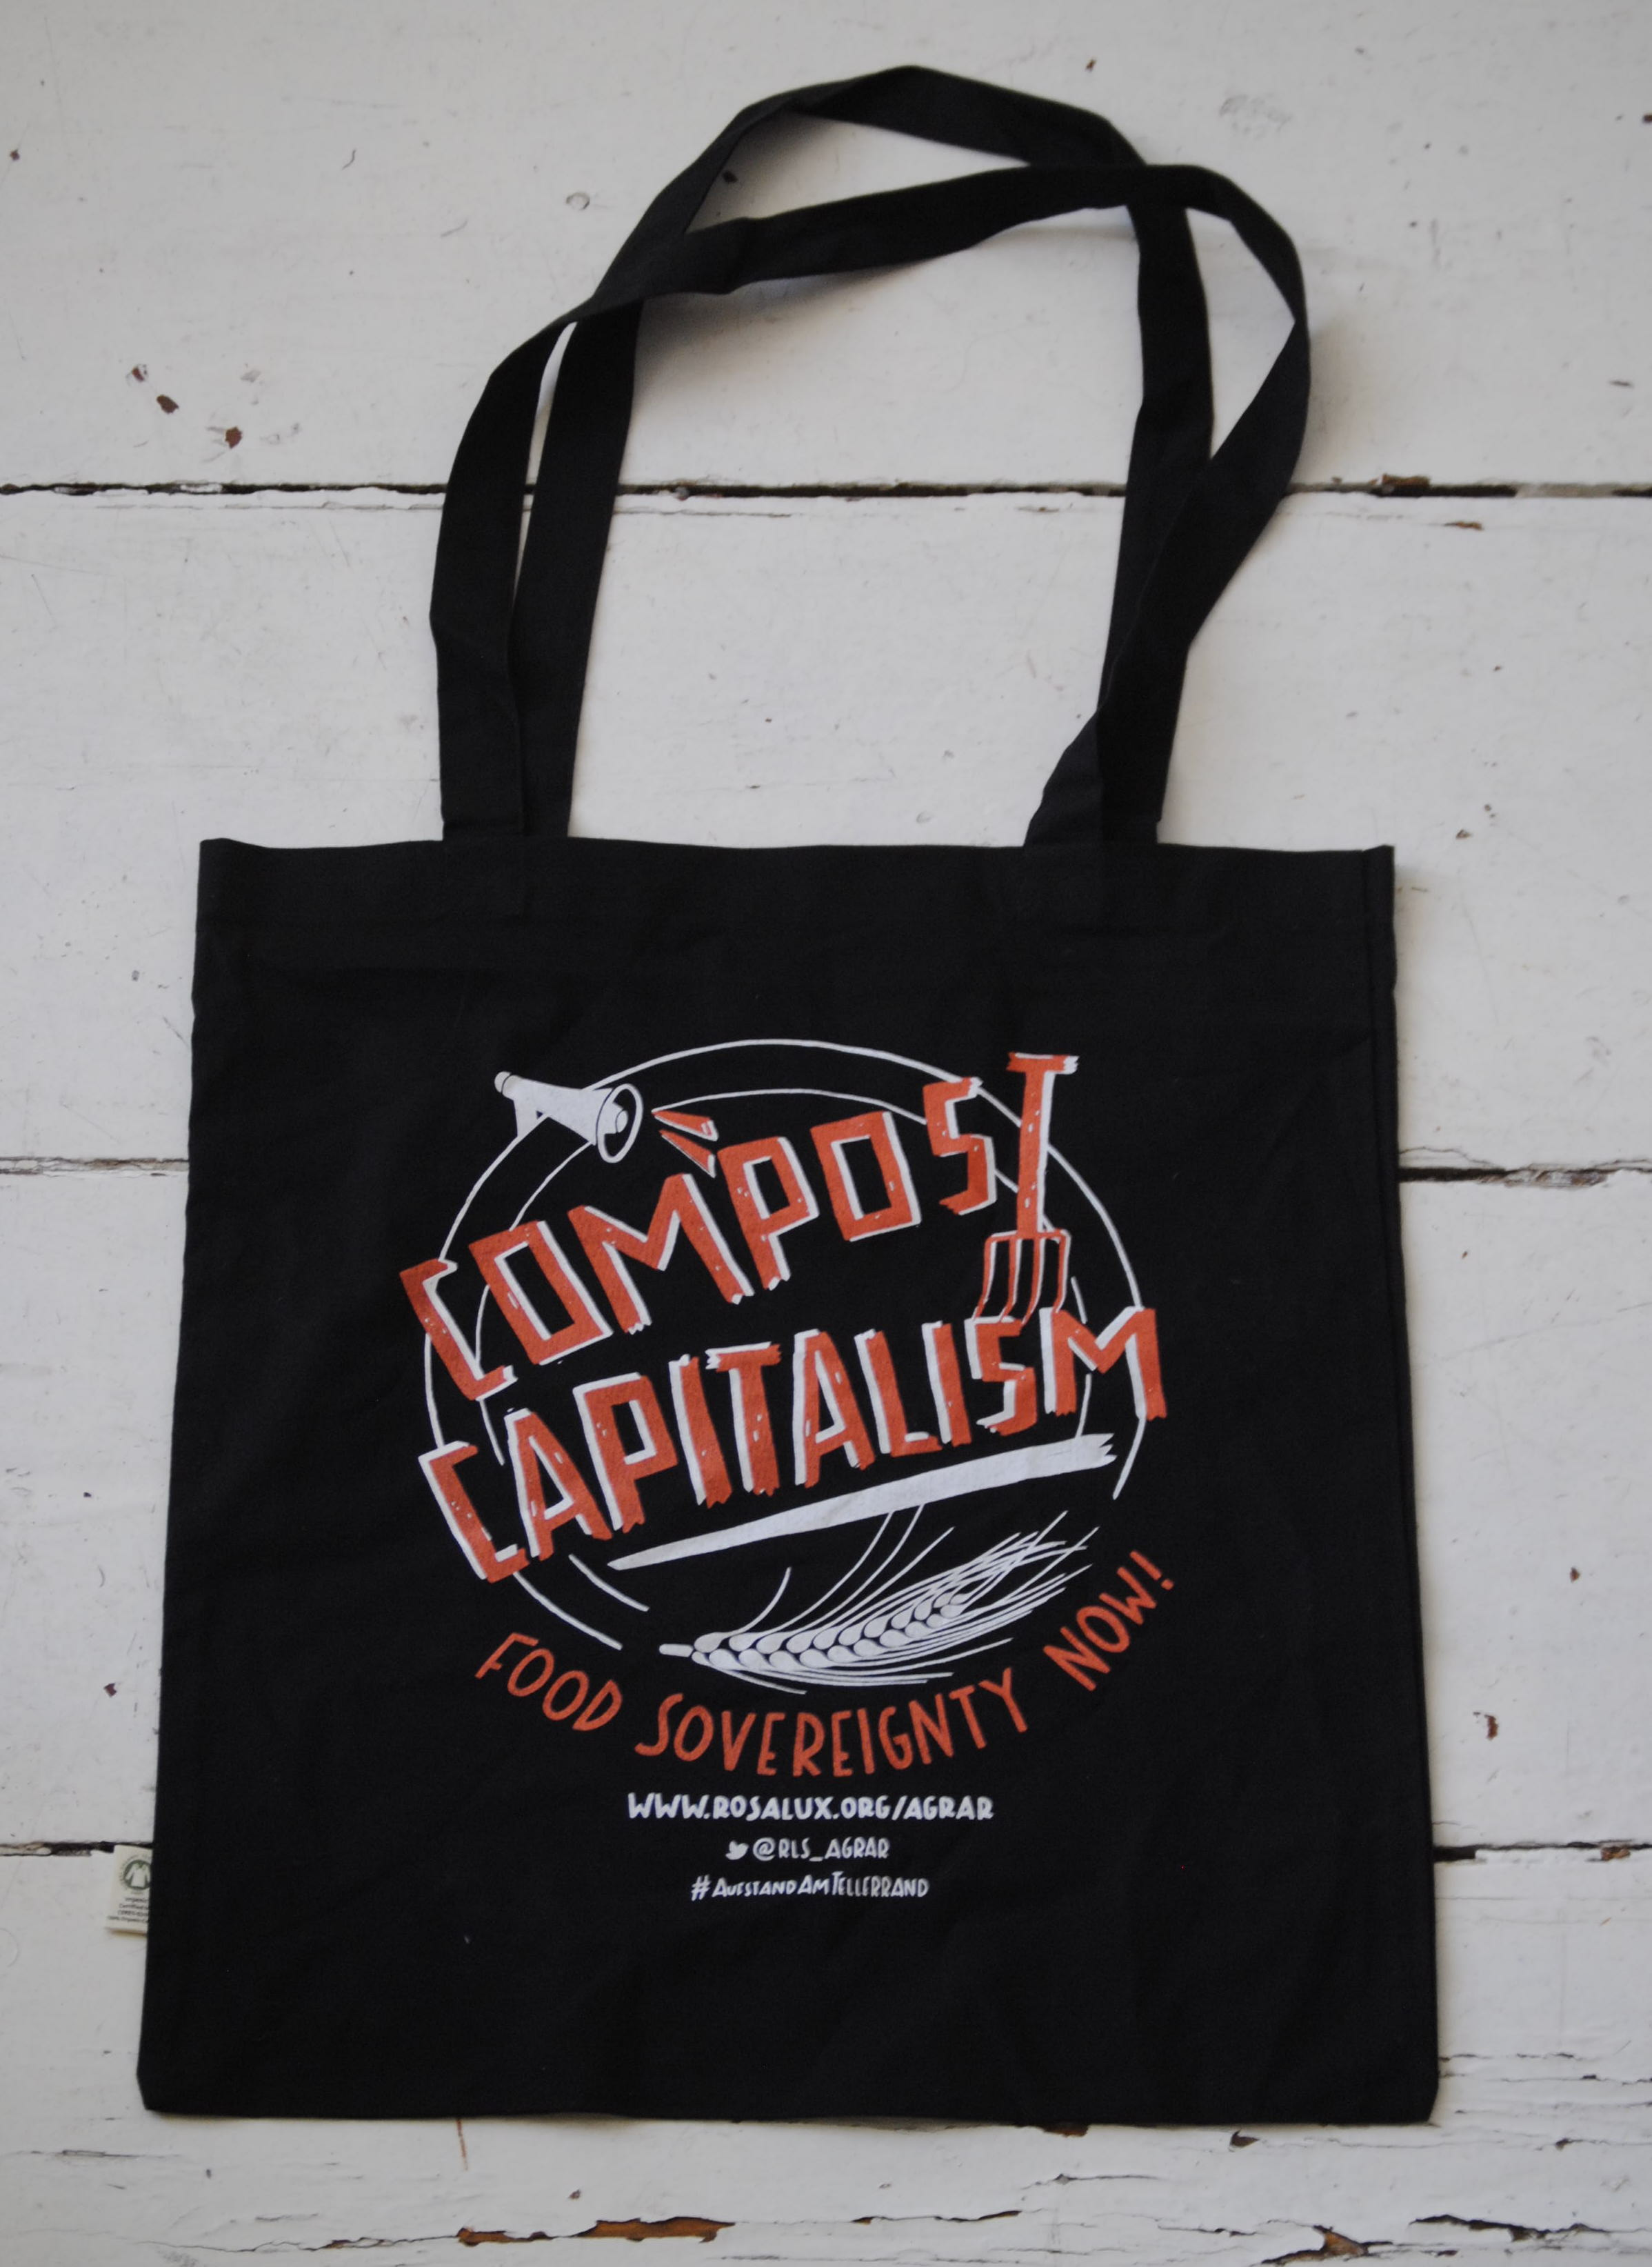 Pictured is a reusable grocery bag given out at the meeting. Compost provides a fertile growing medium for our food. How could 'composting capitalism' use the unprecedented levels of global wealth and prosperity generated in the past centuries as a growing medium for novel evolutionary solutions to the twenty-first century's most pressing global issues?